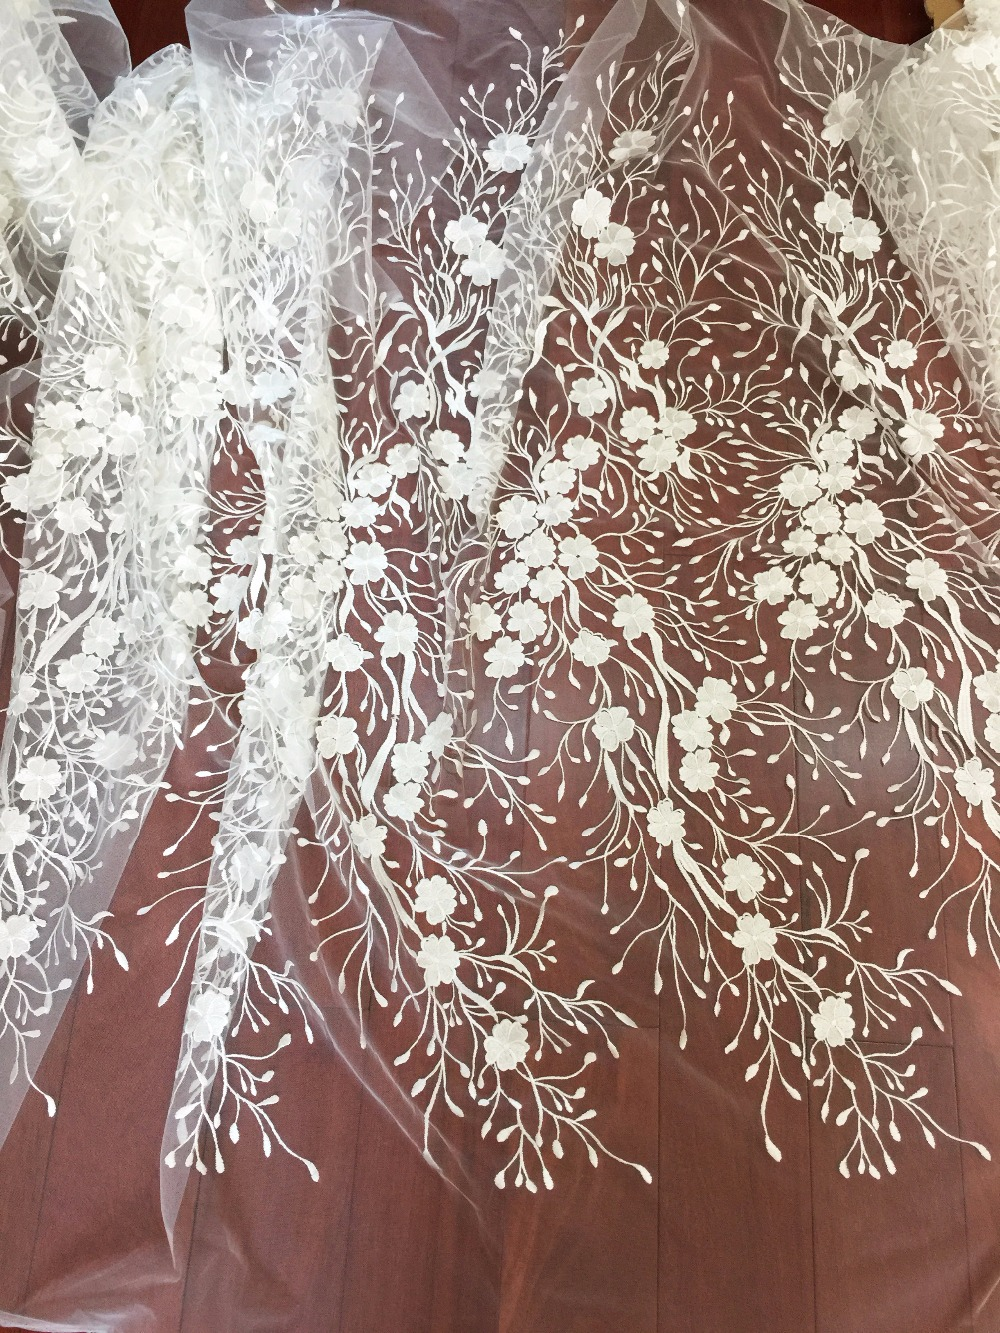 5 yards Floral embroidery bridal lace fabric in off white for wedding gown bridal fabric christening